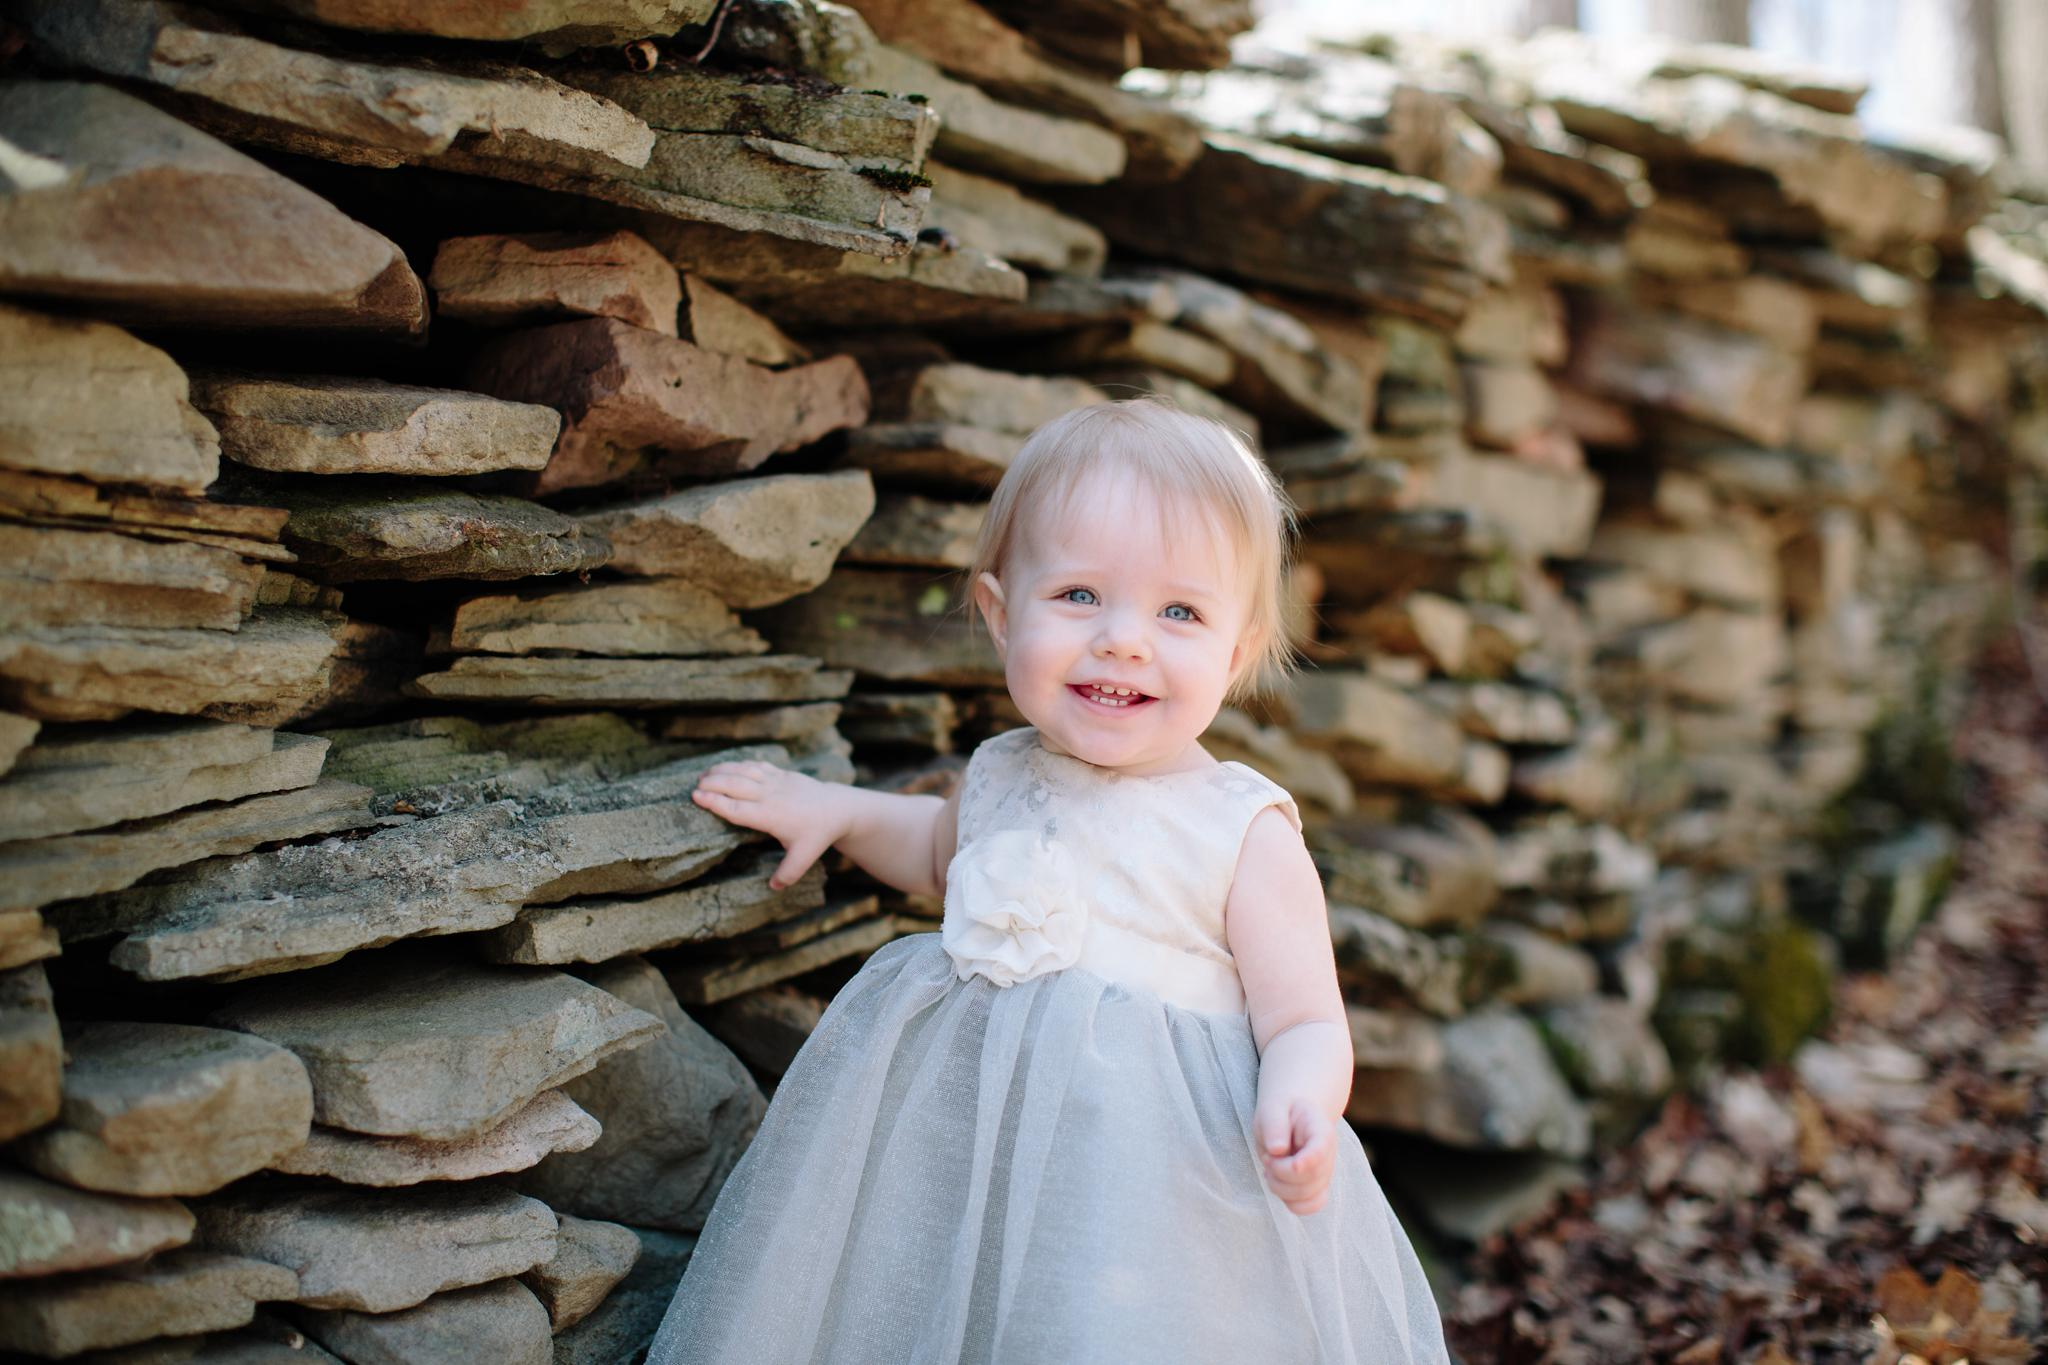 Family_Session_Tierney_Cyanne_Photography_6223.jpg